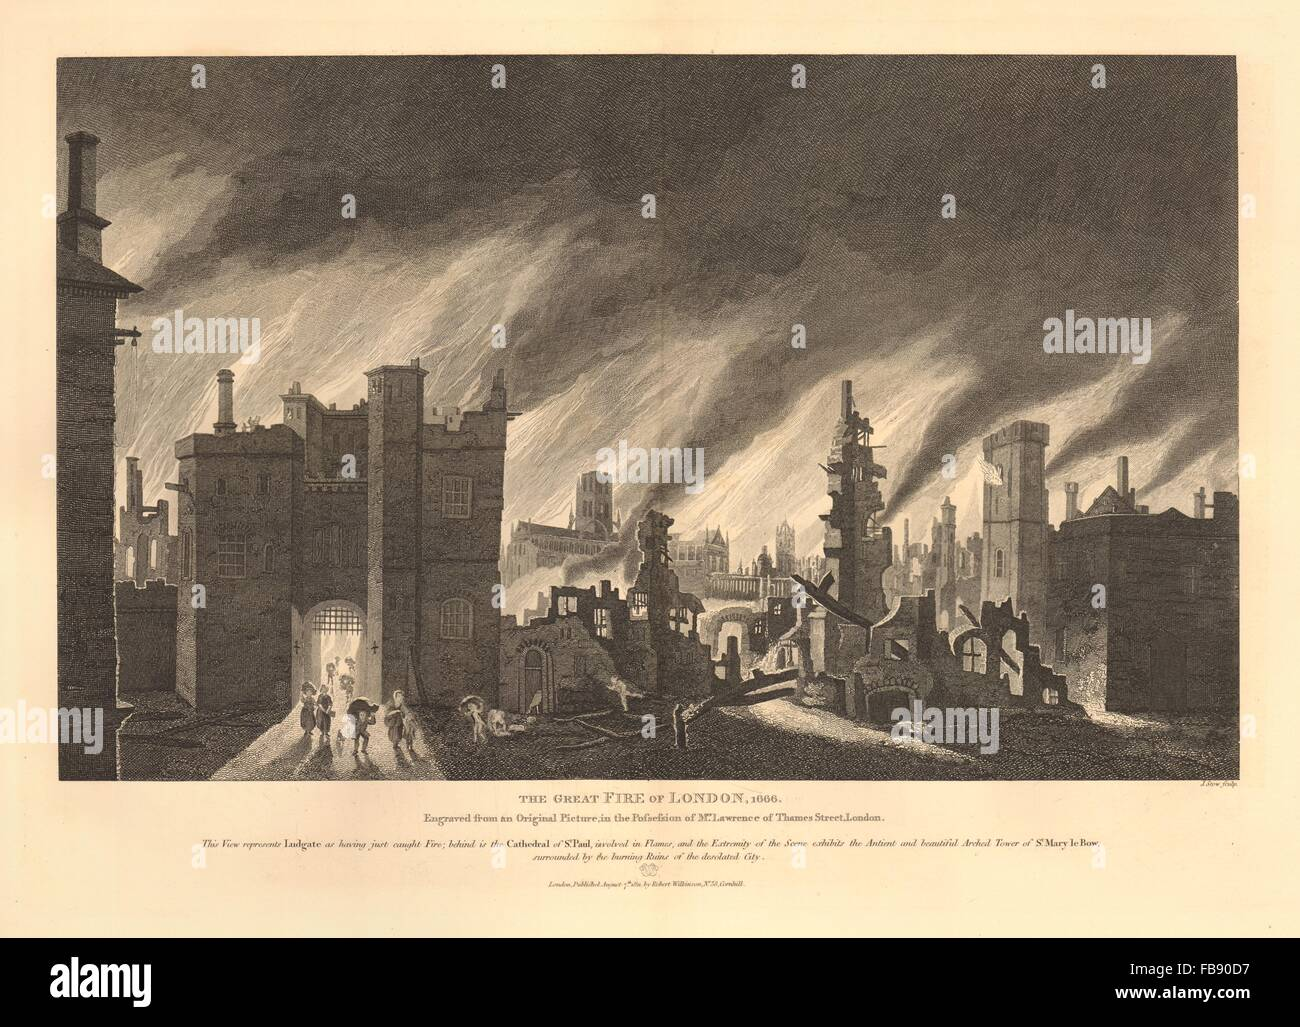 The GREAT FIRE OF LONDON 1666. Ludgate St Paul's Cathedral St Mary-le-Bow, 1834 - Stock Image